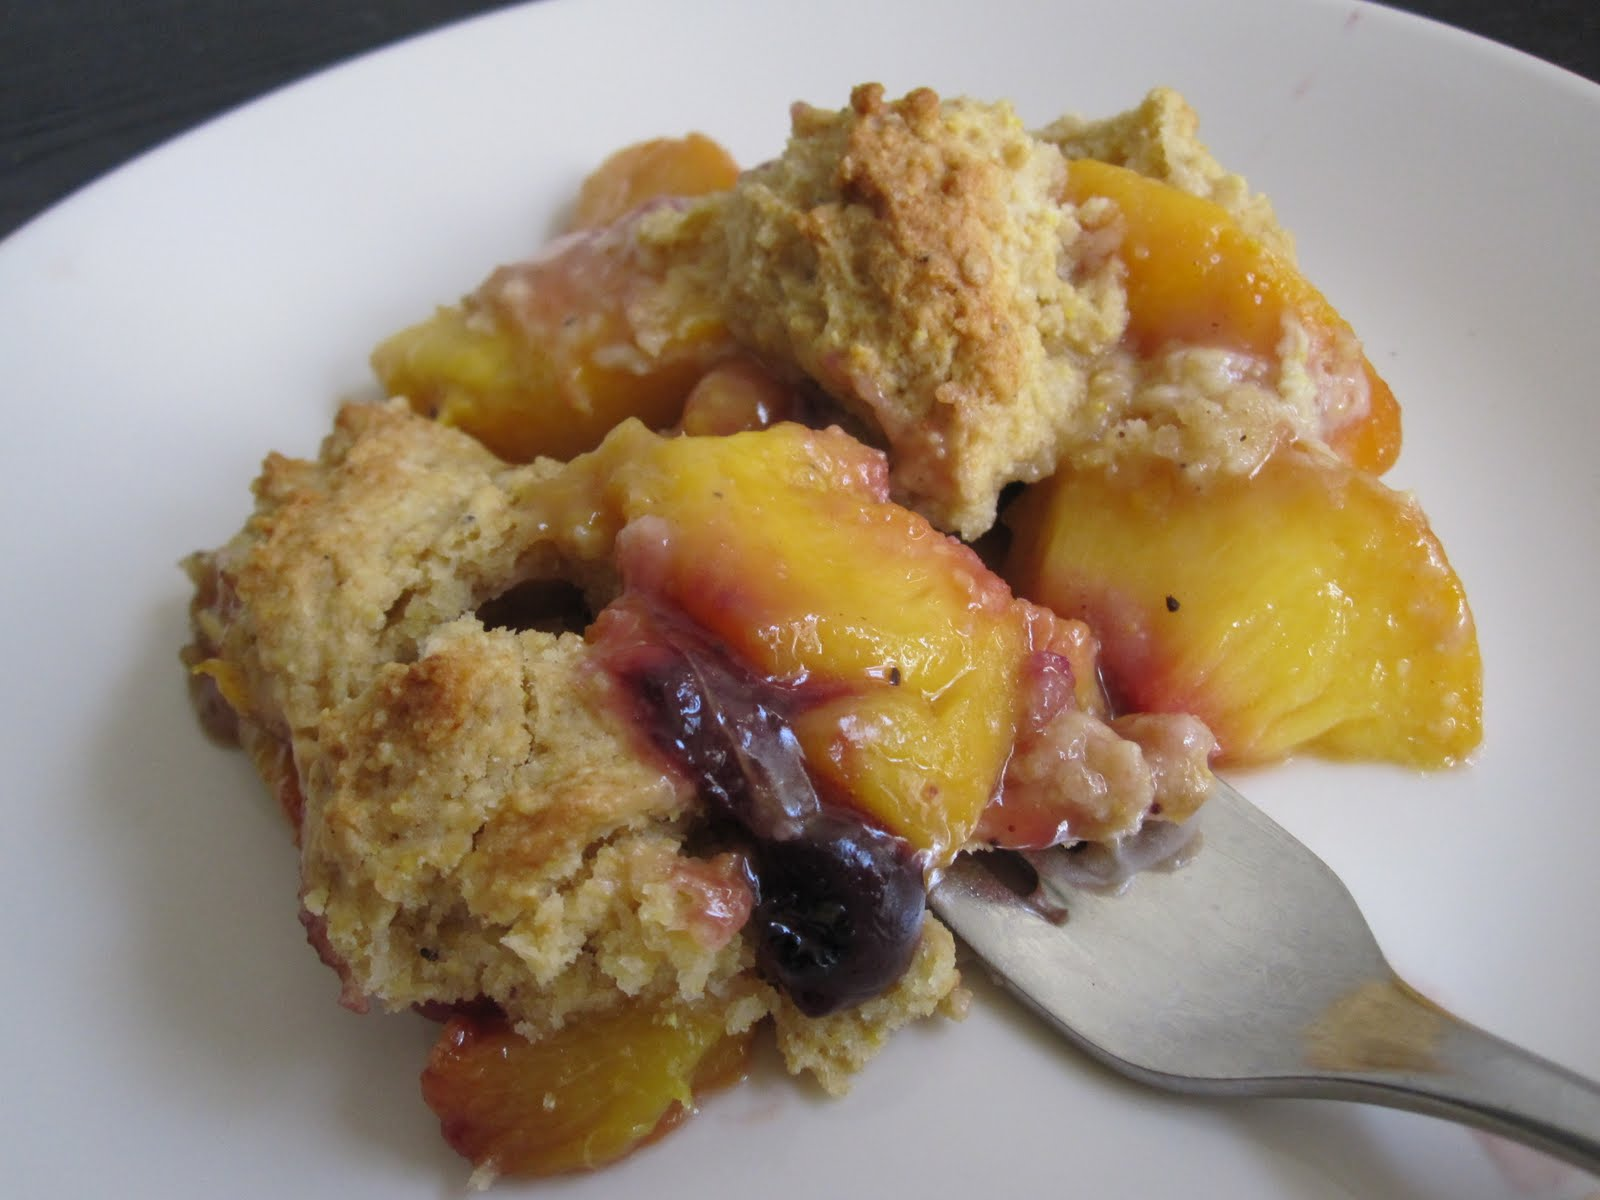 Umami Bomb: Peach and Blueberry Cobbler